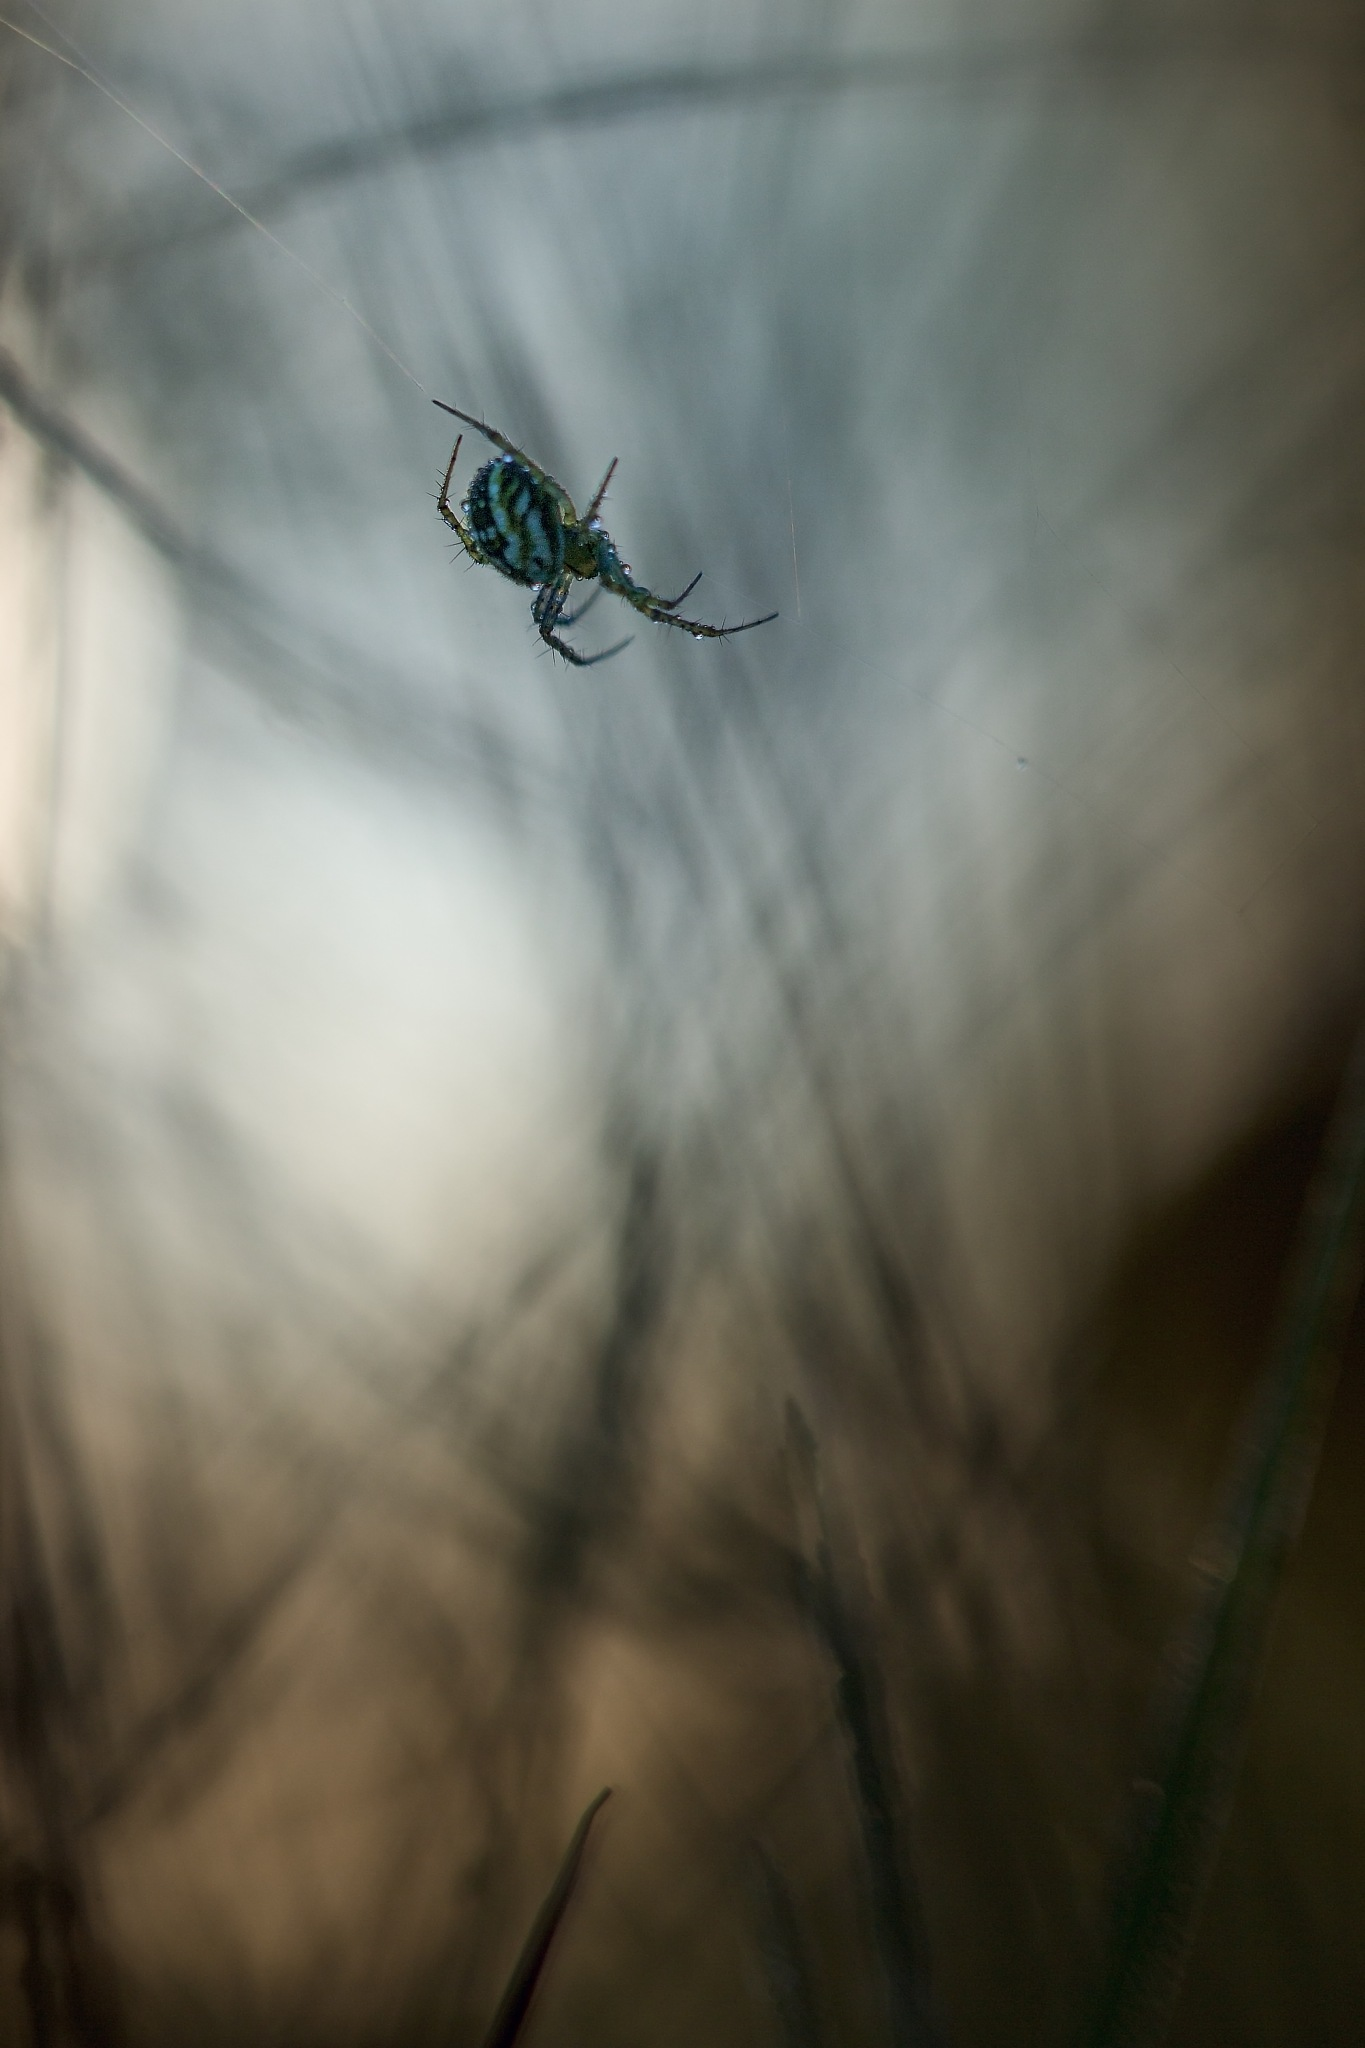 Spider by Yves Droeven